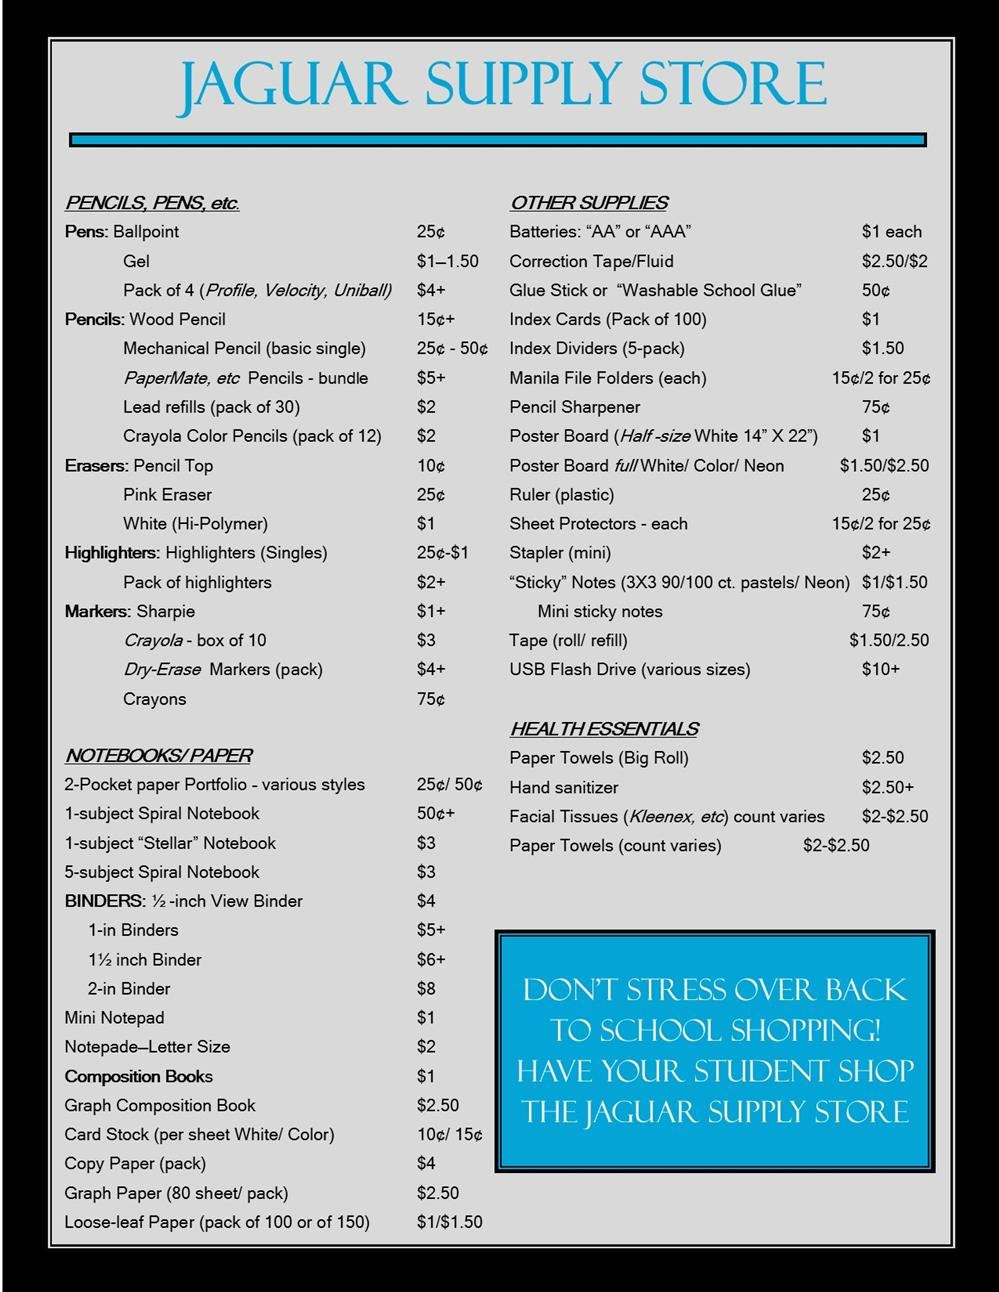 Price List for Jaguar Supply Store